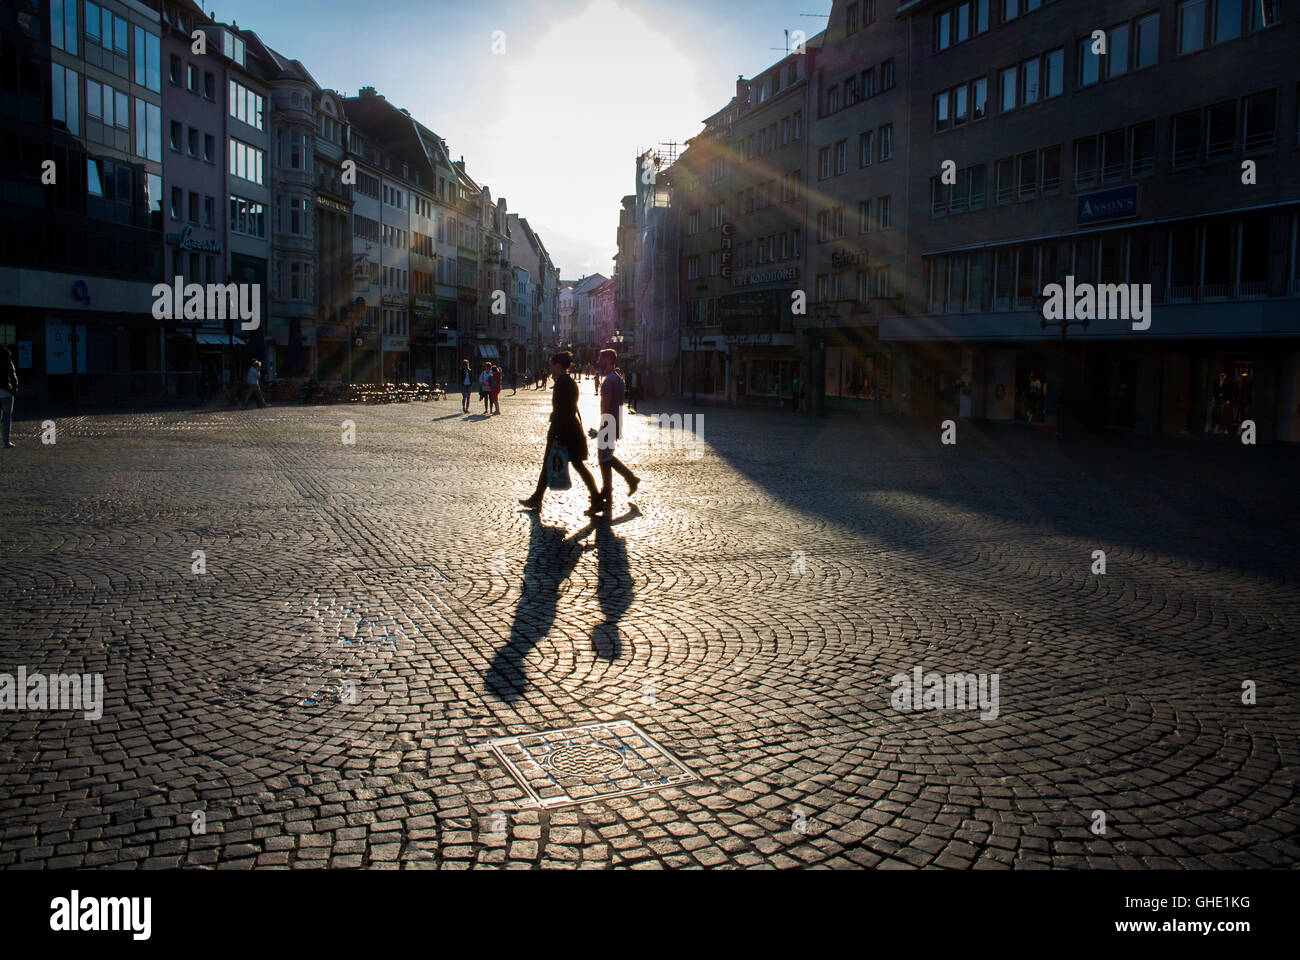 Shoppers stroll through the main square in Bonn, Germany. - Stock Image